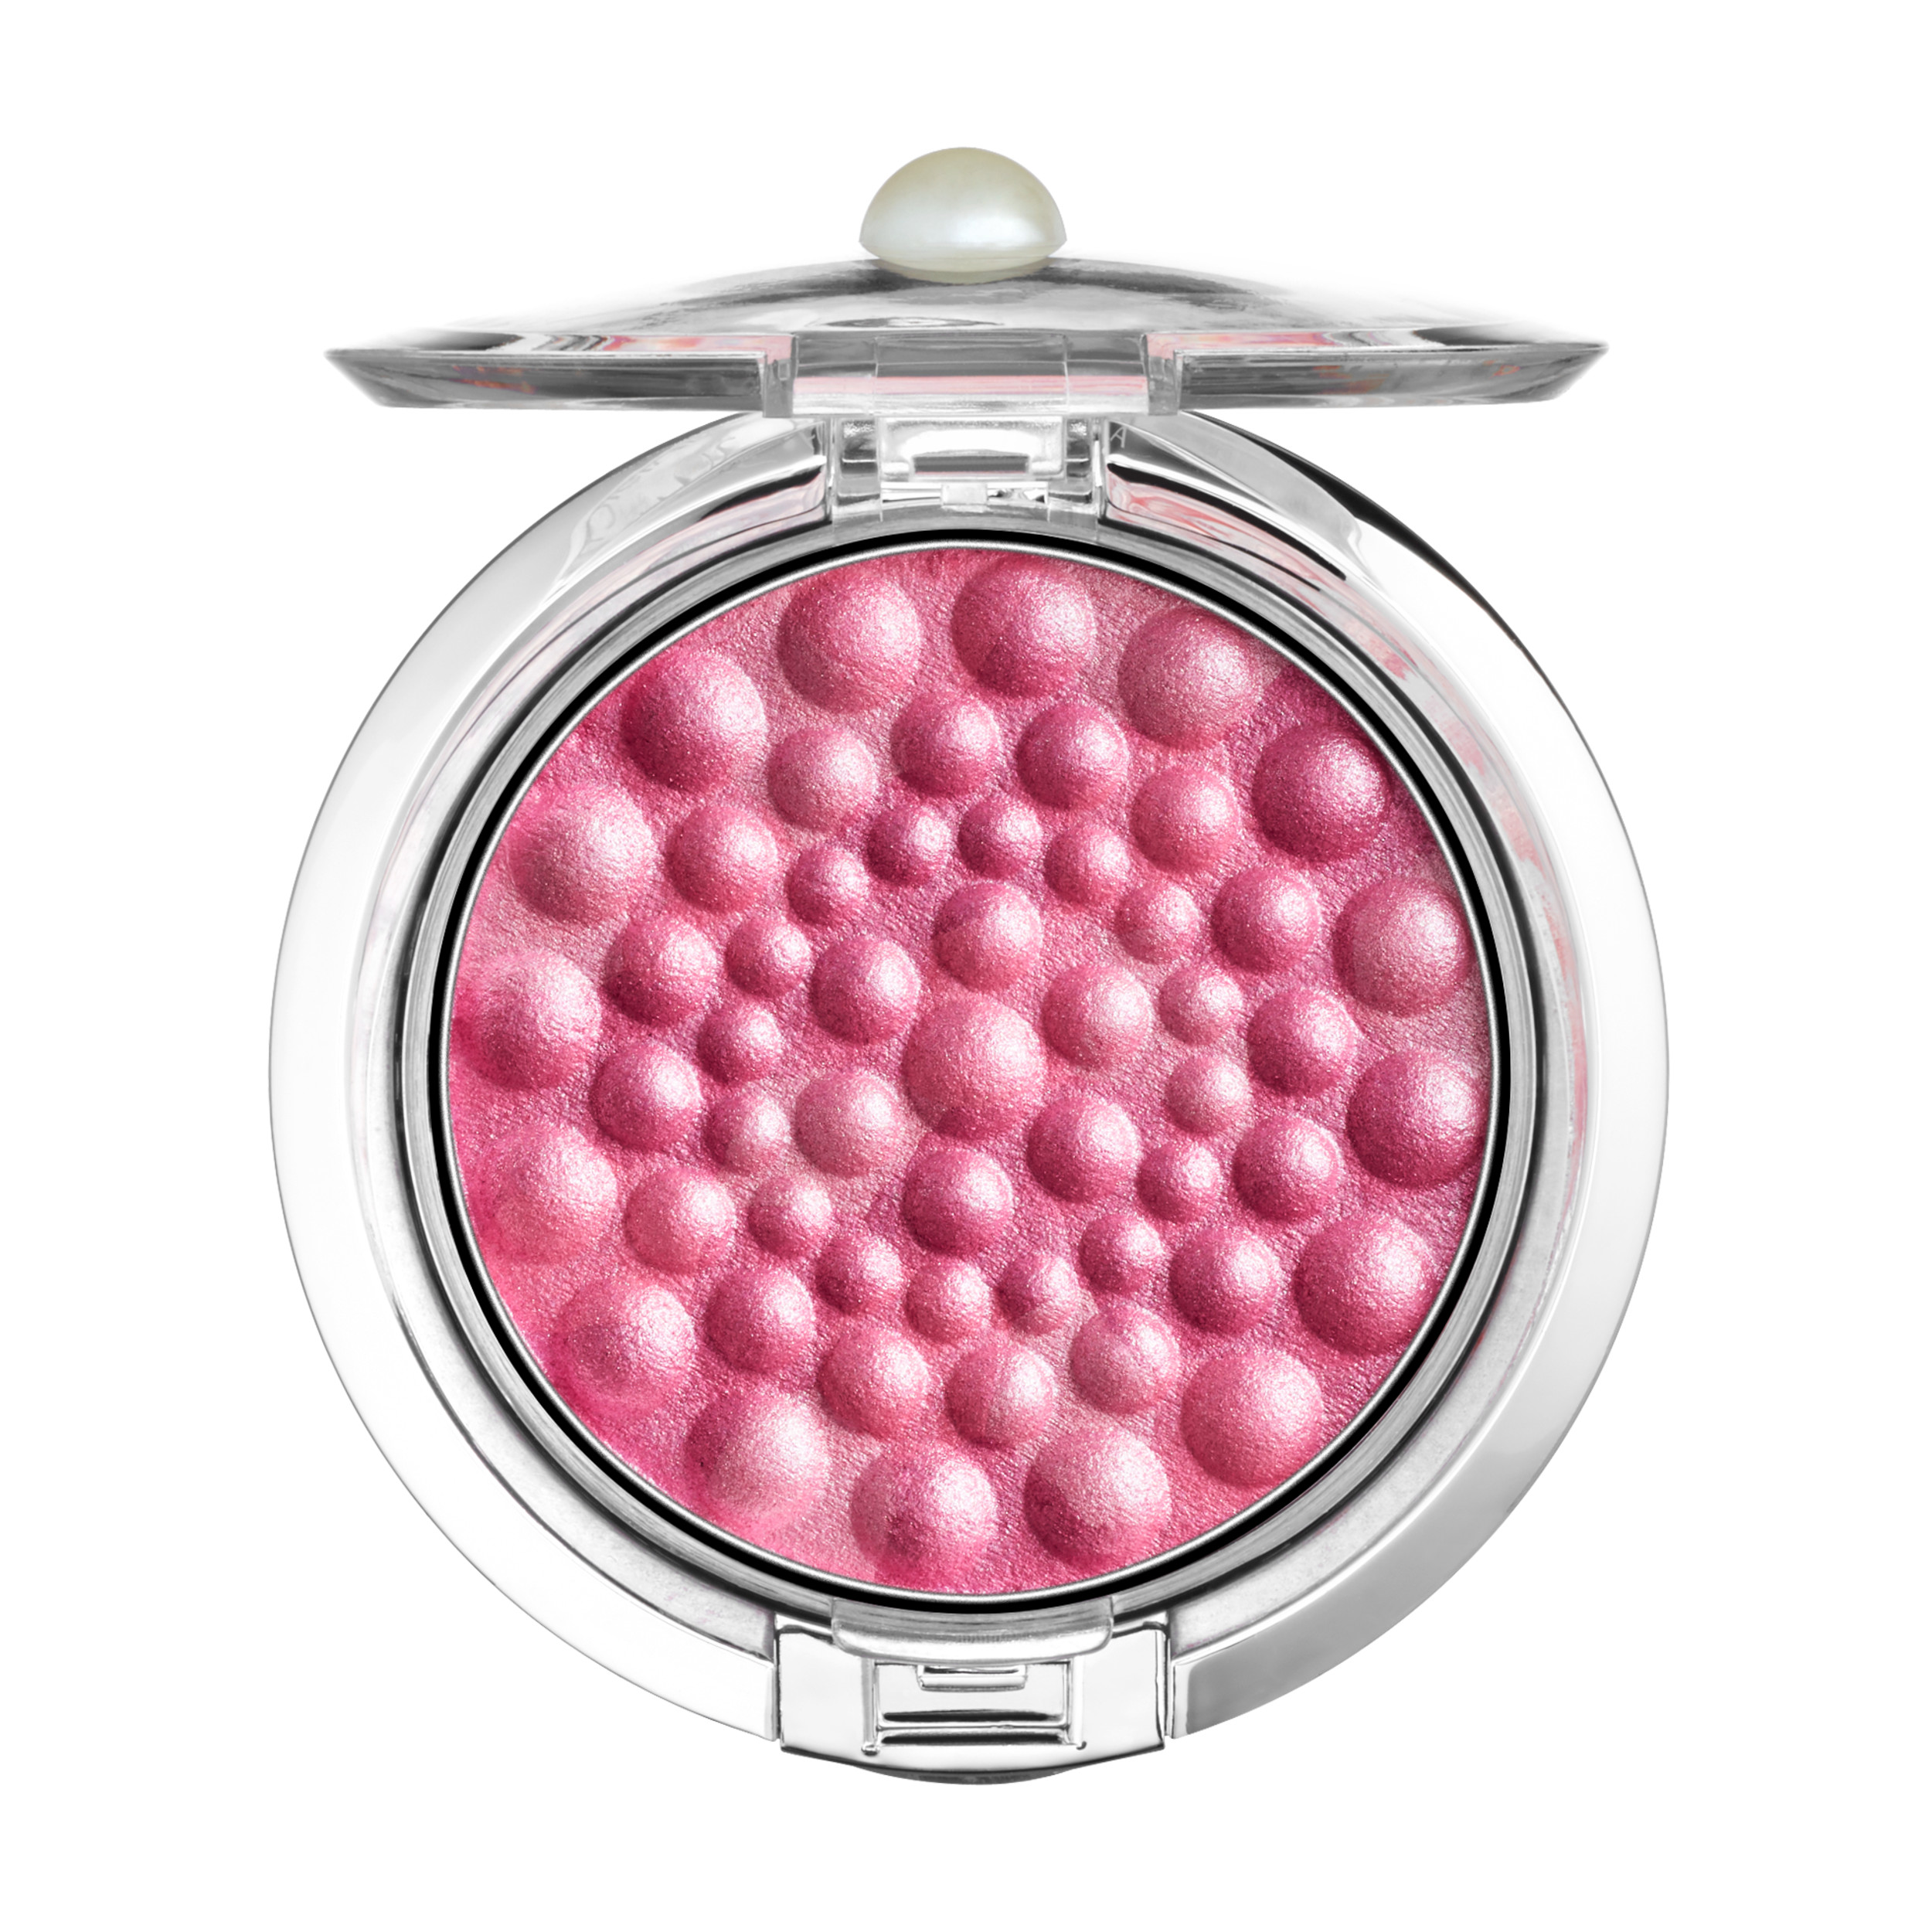 Physicians Formula Powder Palette® Mineral Glow Pearls Blush, Rose Pearl